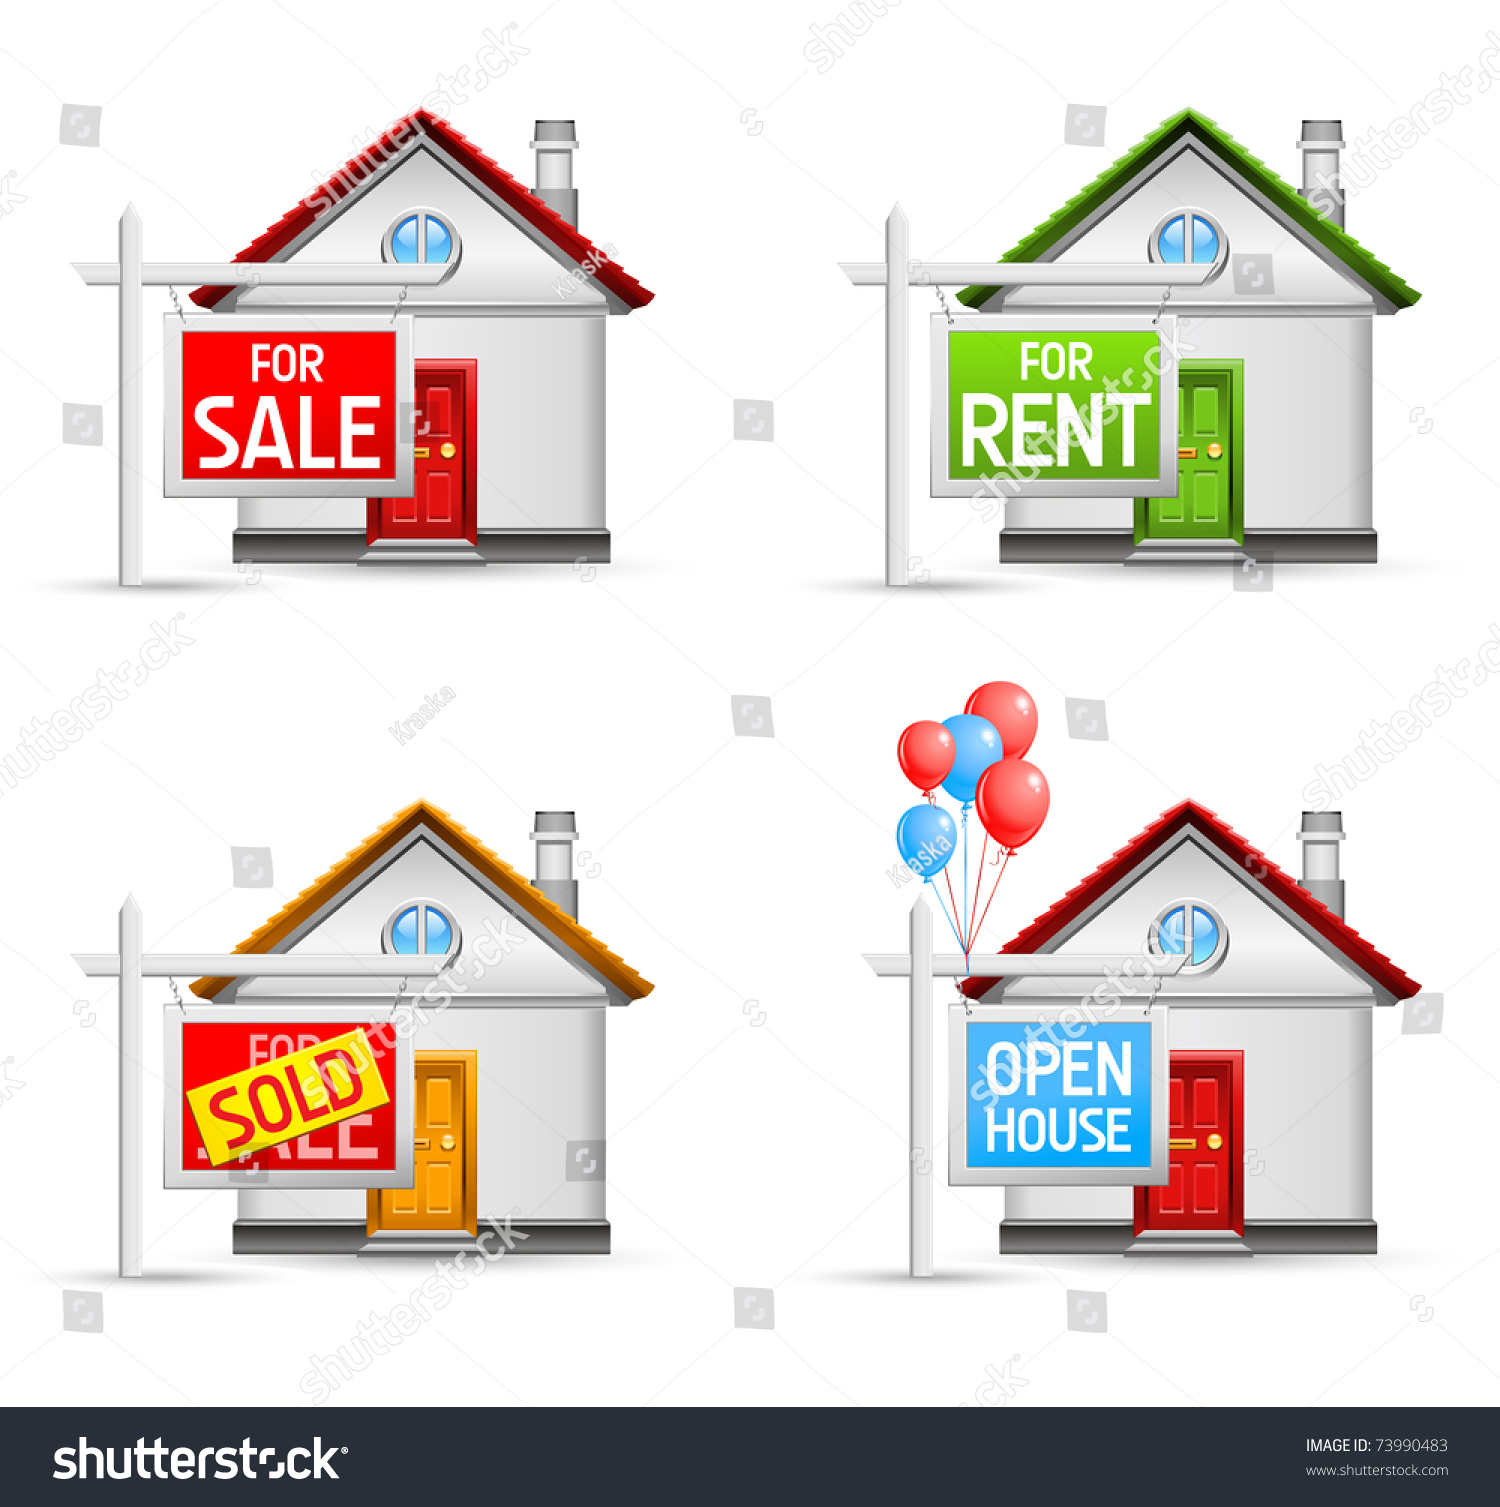 Realestate For Rent: House For Sale, For Rent, Sold